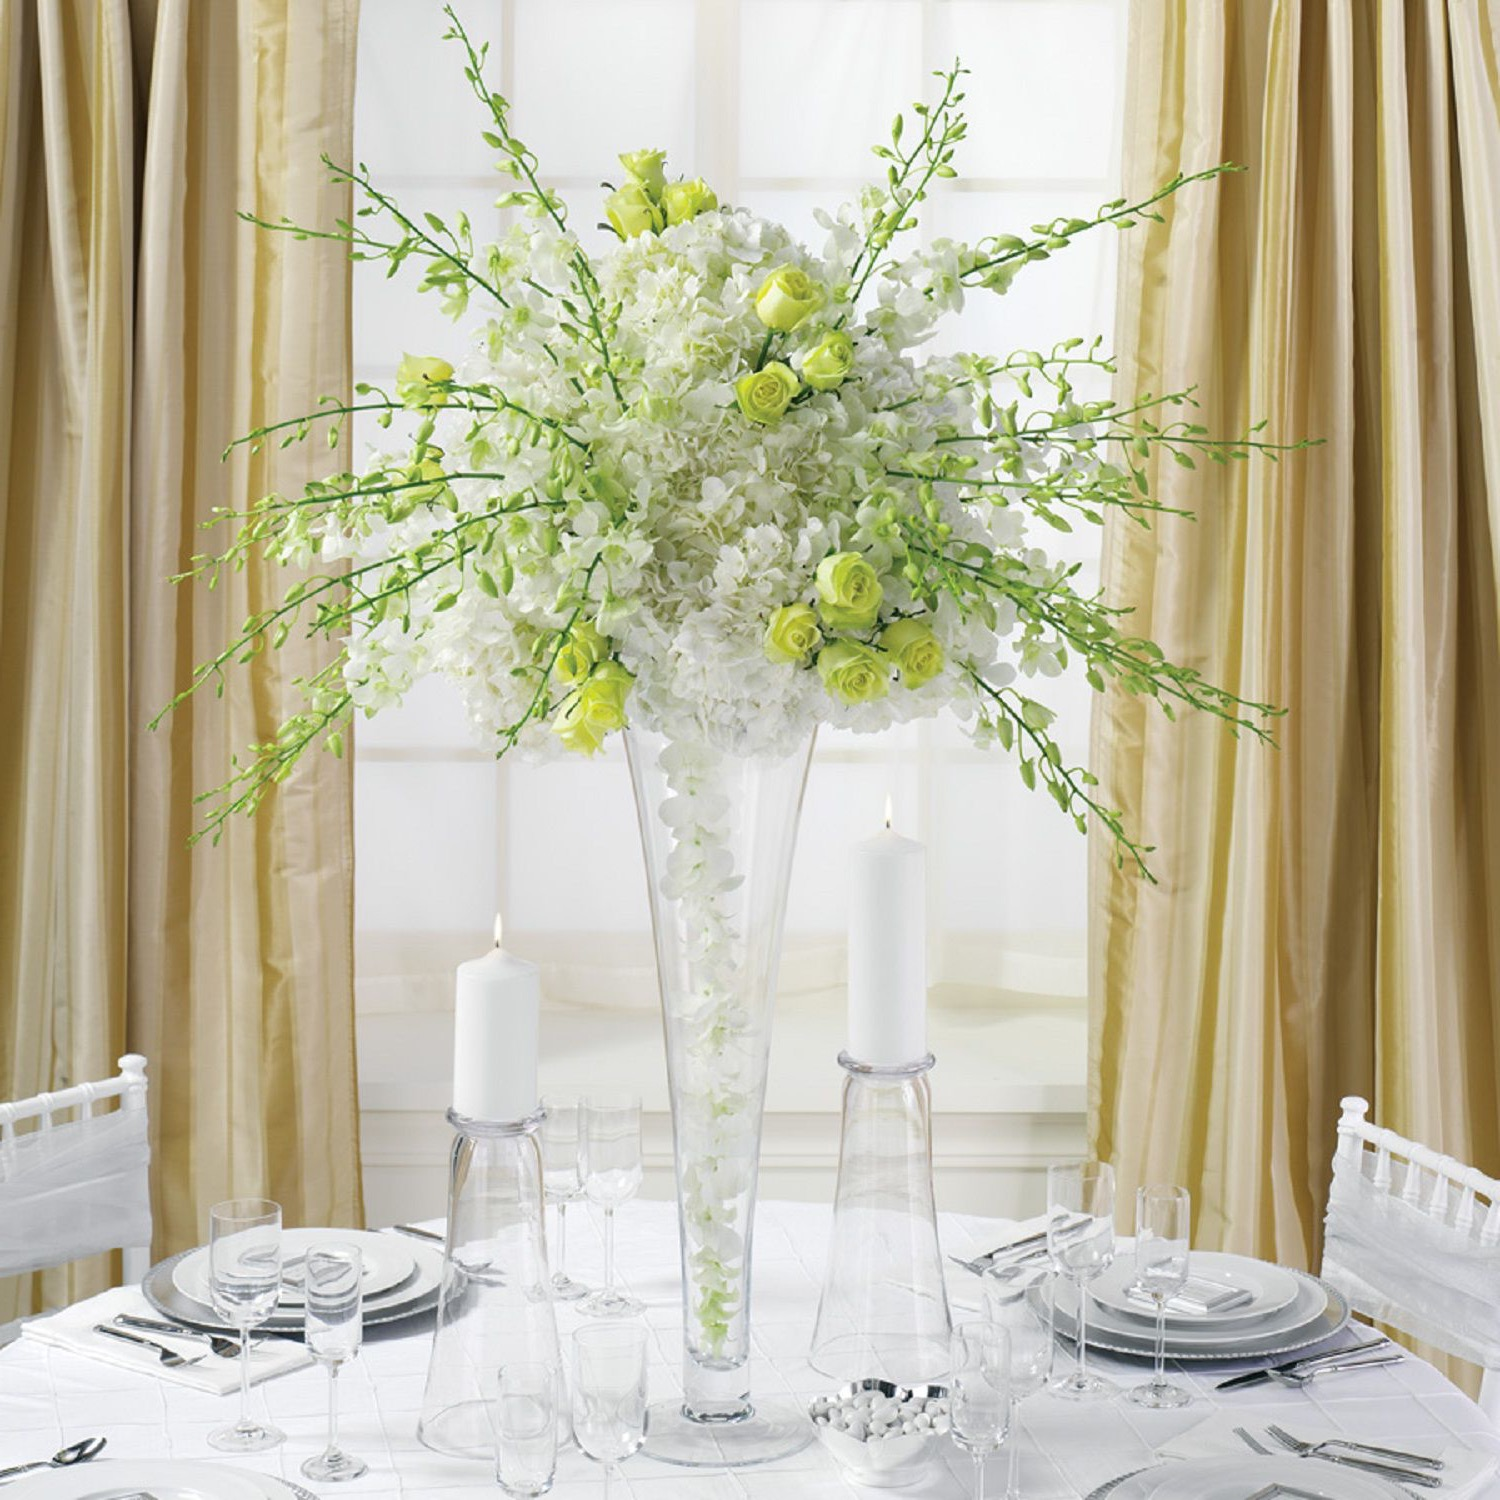 Tall Green And White Flower Centerpiece With Tall Glass Vase For Wedding (Image 21 of 30)